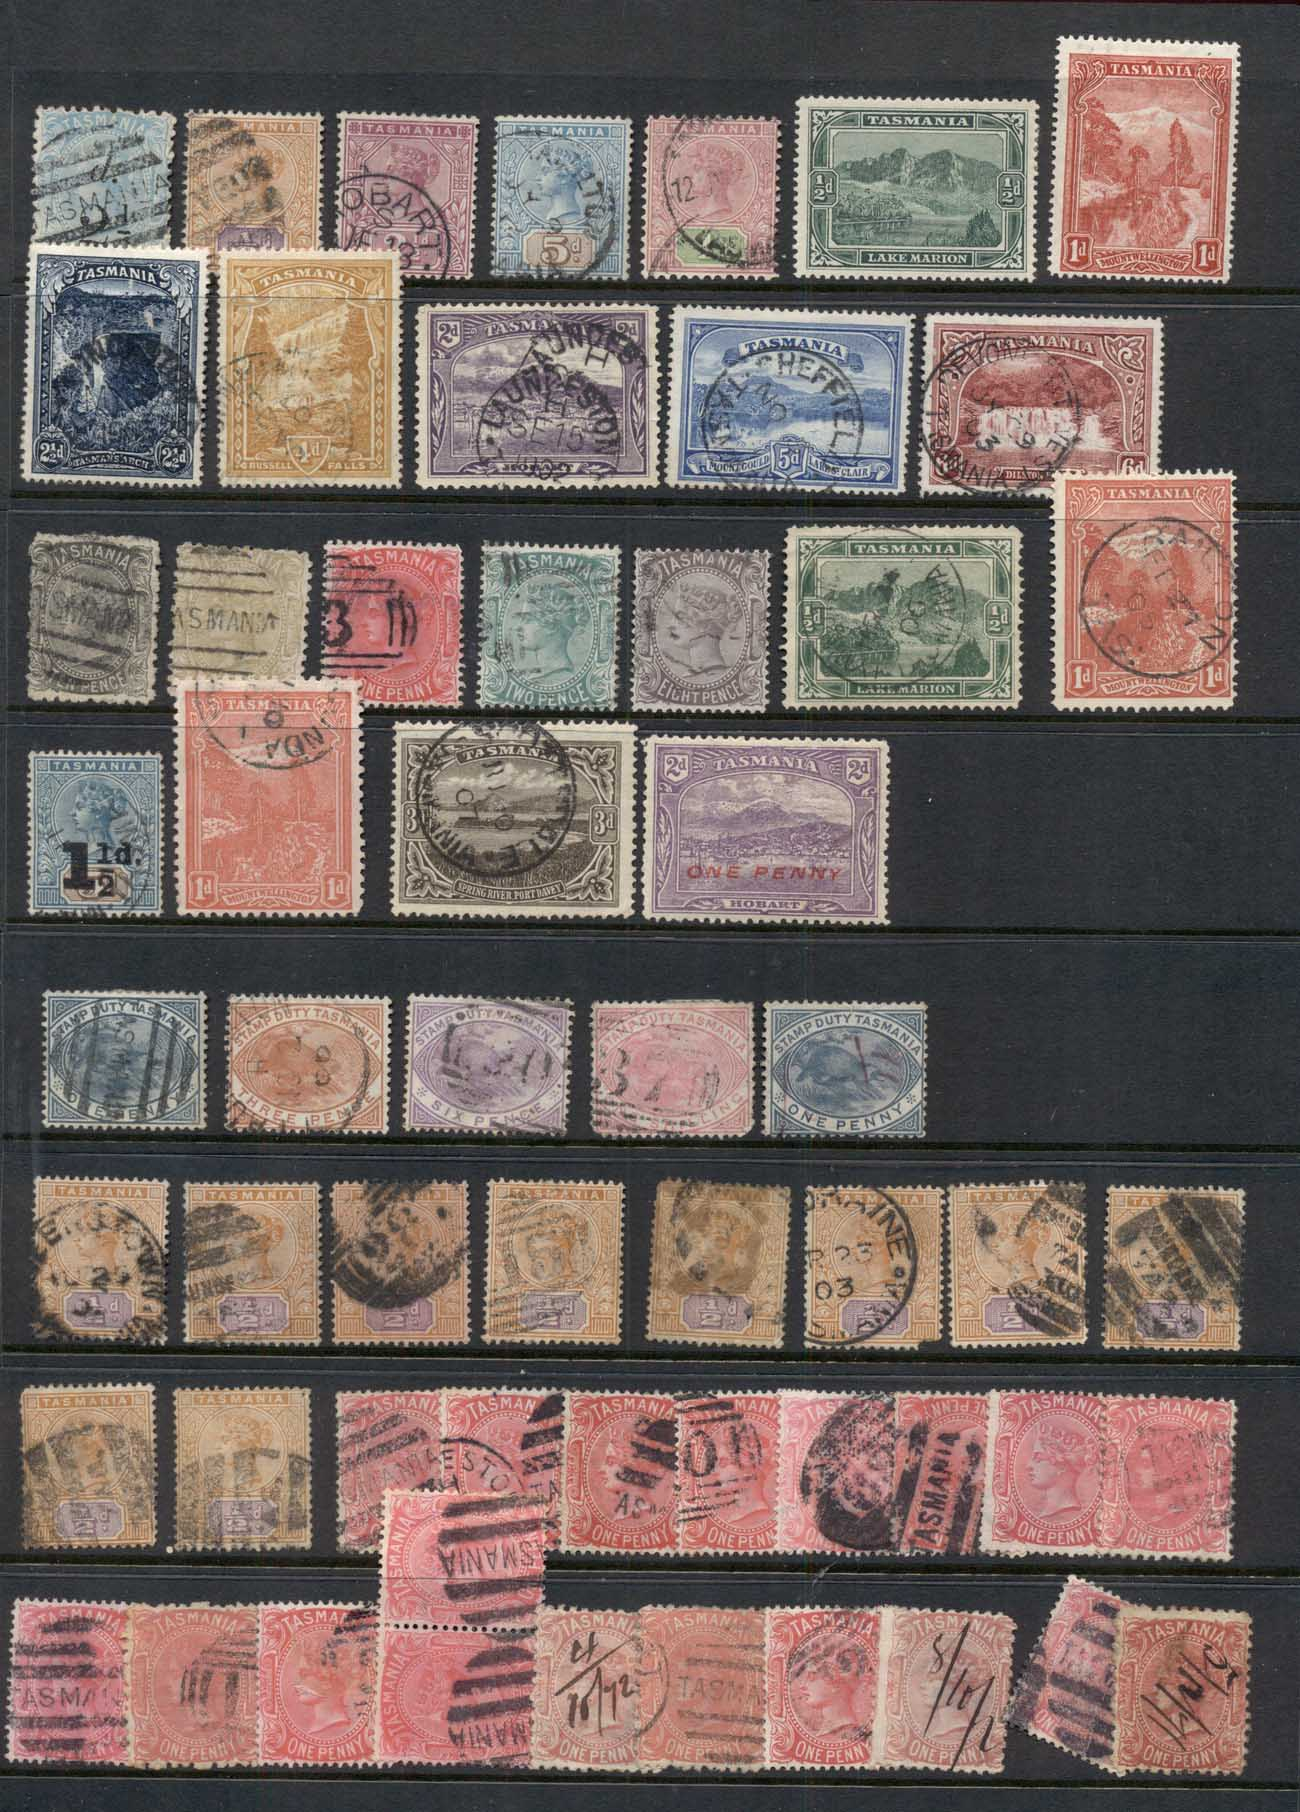 TAS 1860's on Assorted Oddments, duplicates, interest for postmarks, perforations, shades & watermark varieties, (faults)3 scan